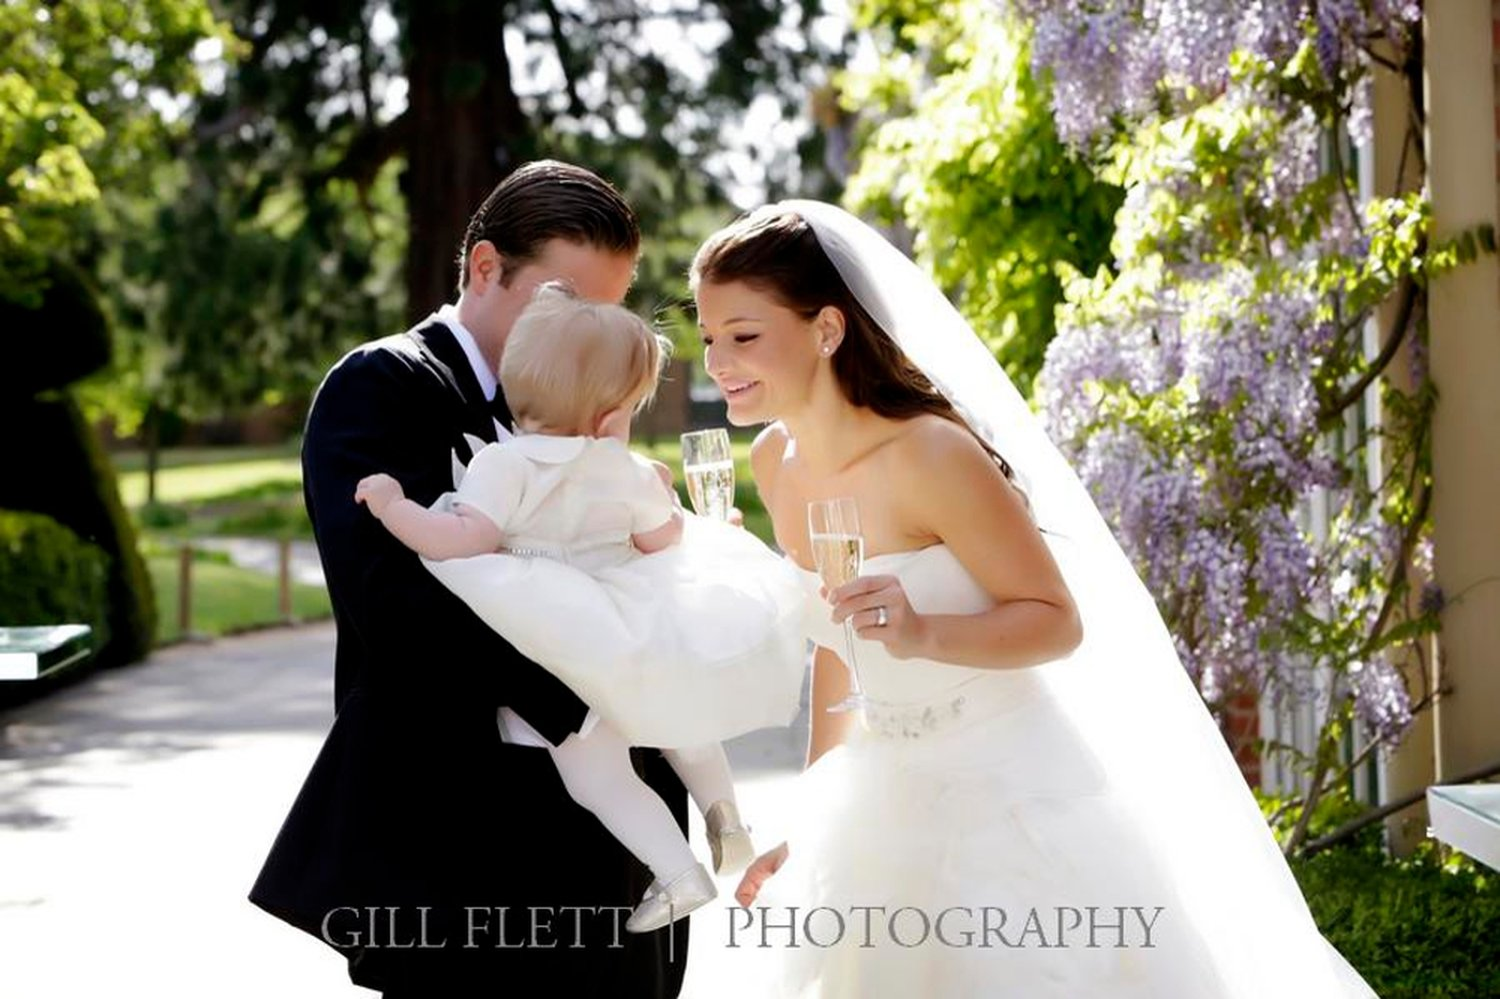 bride-groom-daughter-grove-black-tie-wedding-gillflett-photo_img_0013.jpg